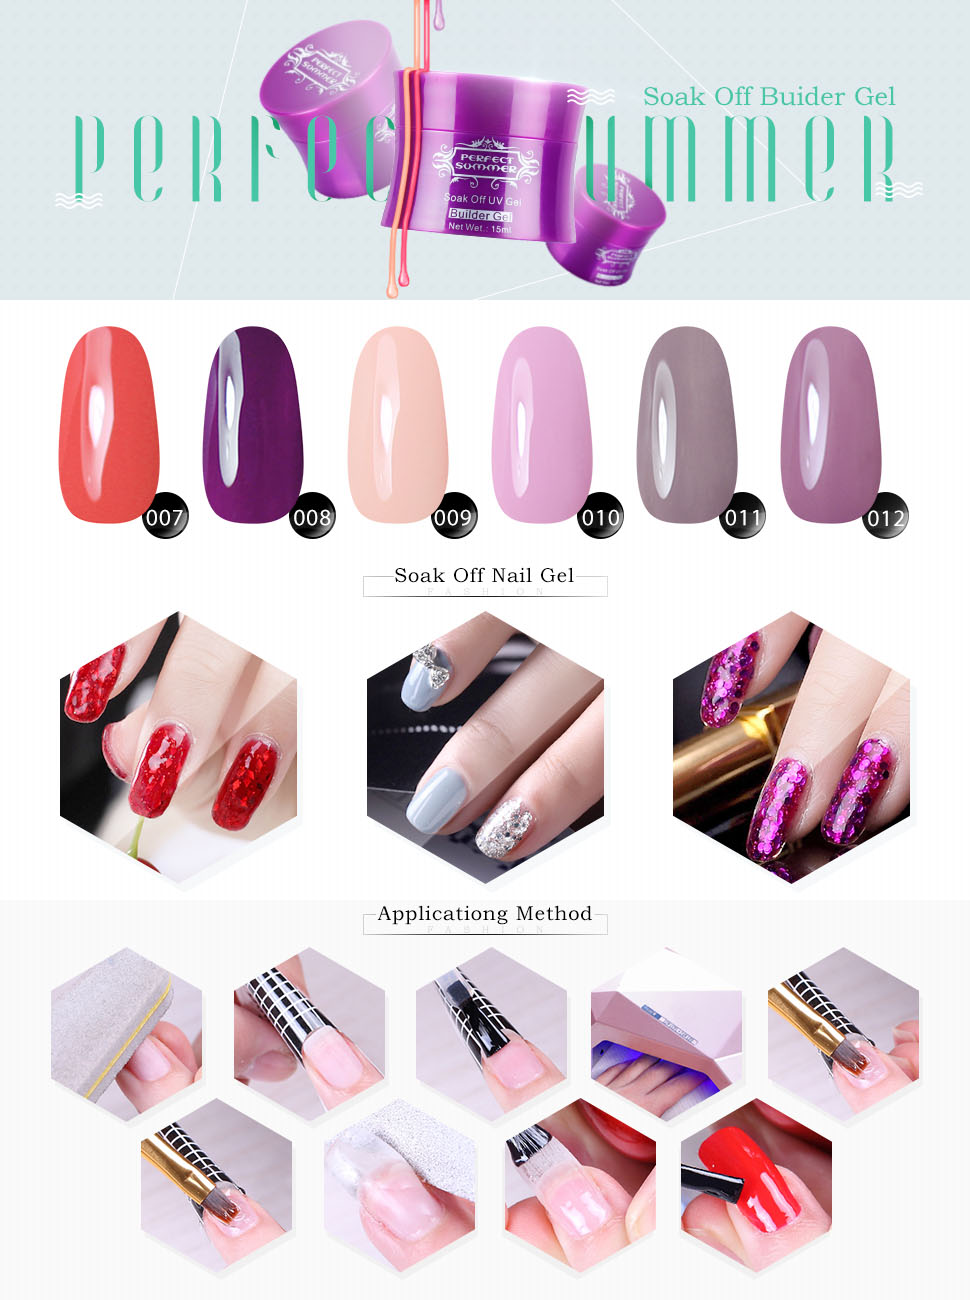 Amazon.com : Perfect Summer 6pcs UV Builder Gel Nail Polish + 2pcs ...